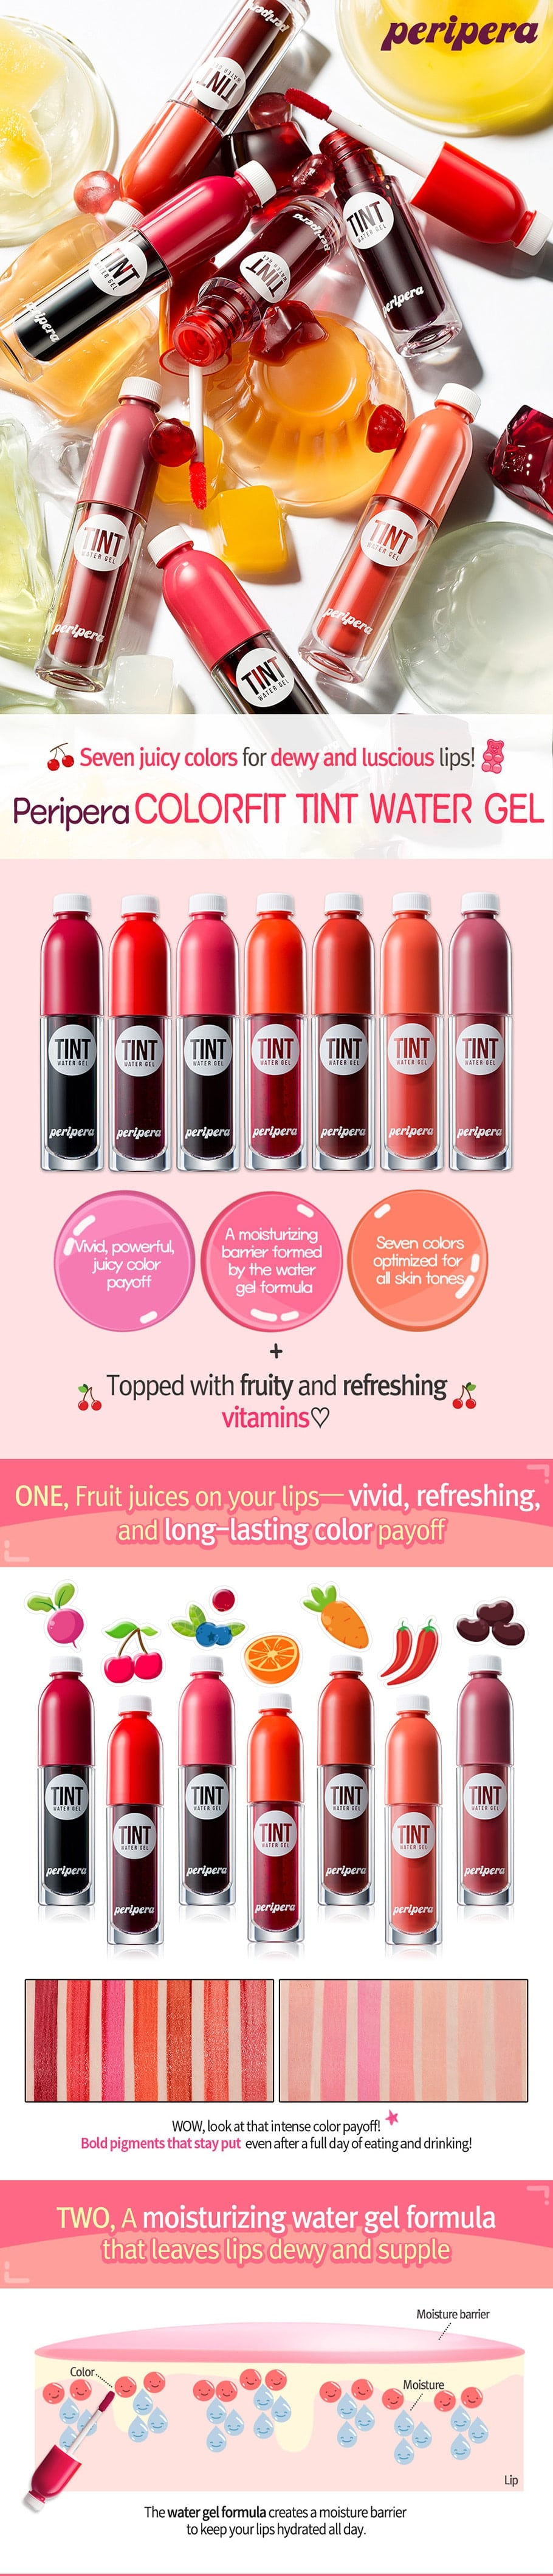 PERIPERA Colorfit Tint Water Gel [006 Carrotpress]